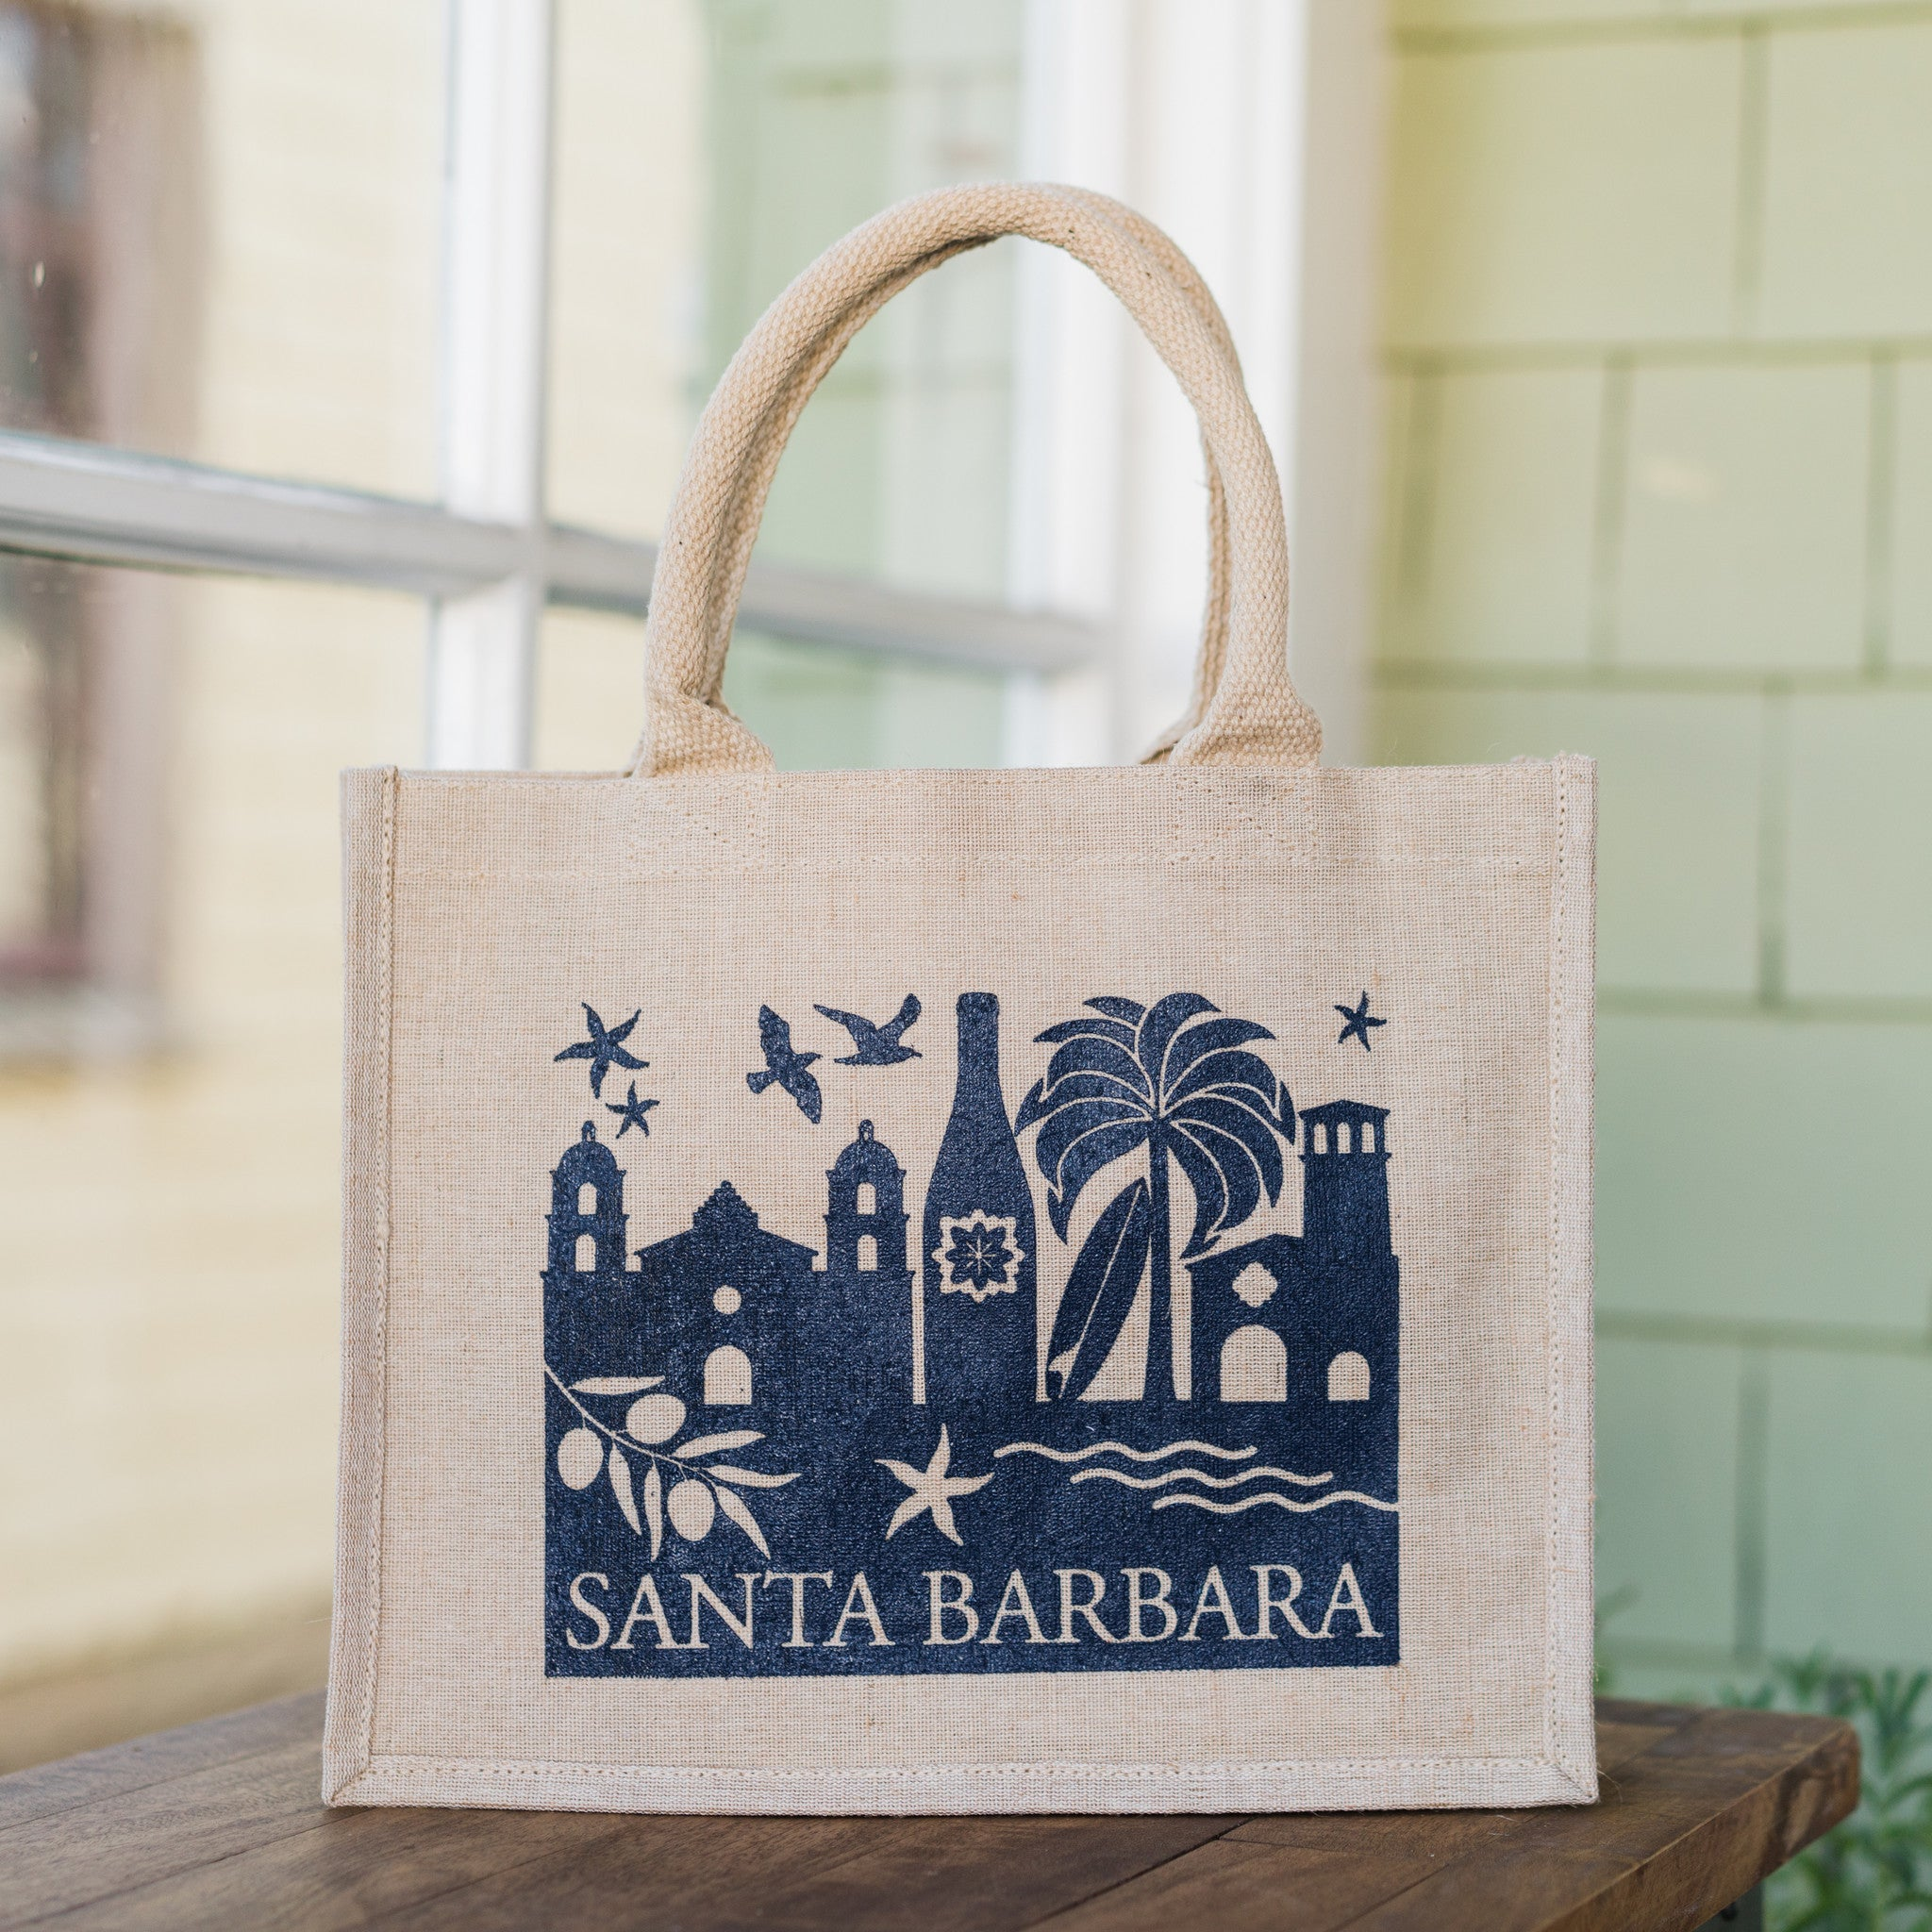 Only santa barbara gift bag santa barbara company only santa barbara gift bag gift sets and boxes assortedgifts the santa negle Choice Image